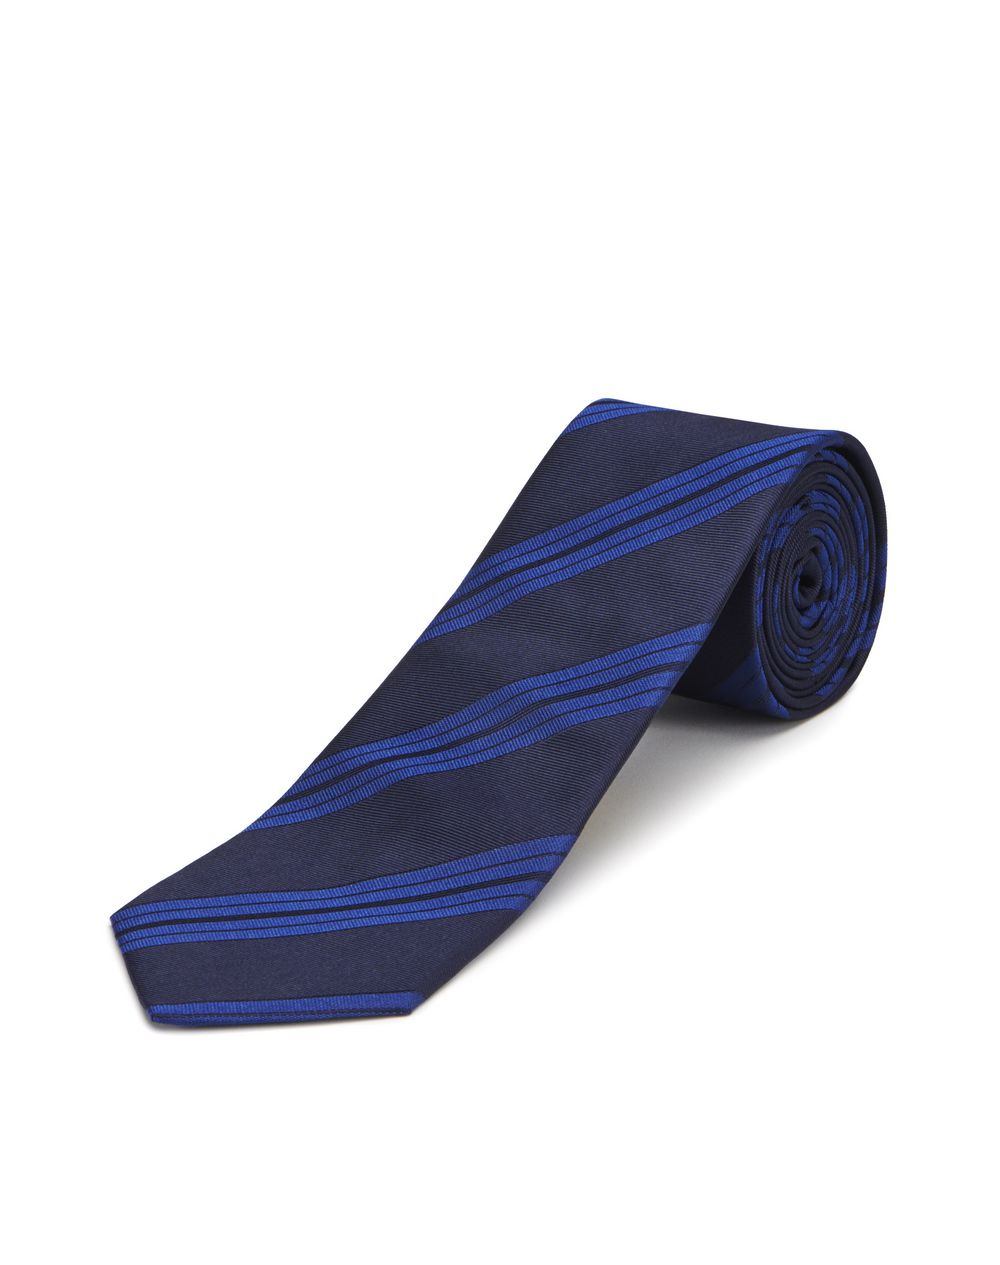 BLUE STRIPED NECKTIE - Lanvin